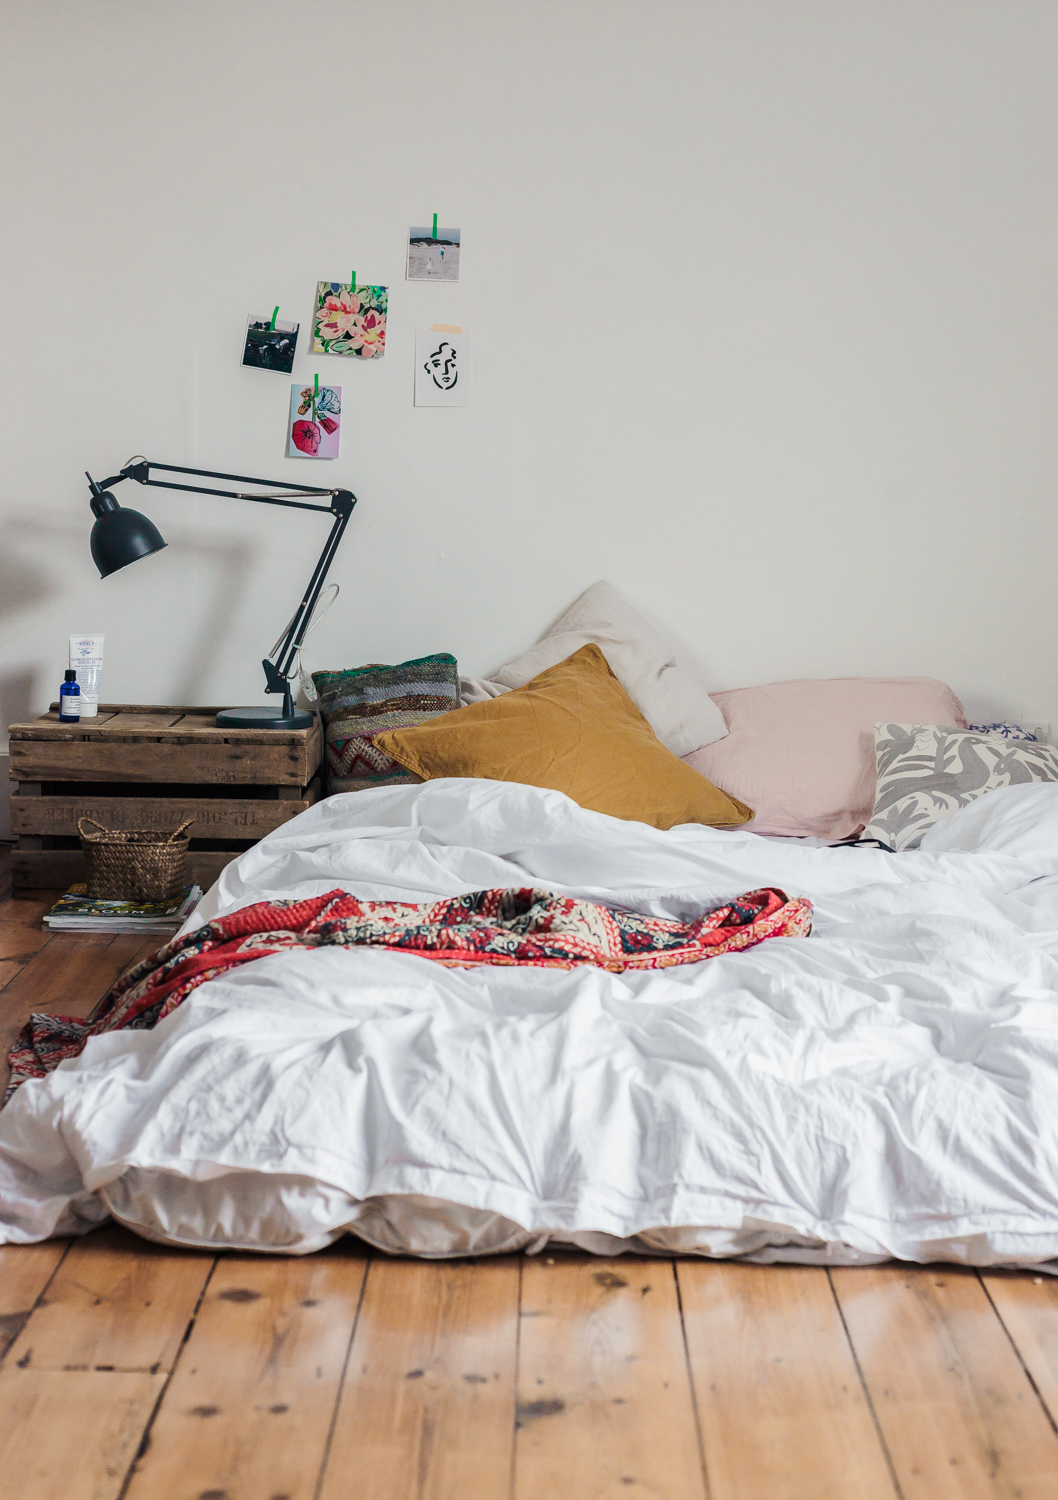 How to make space for yourself when you feel overwhelmed.